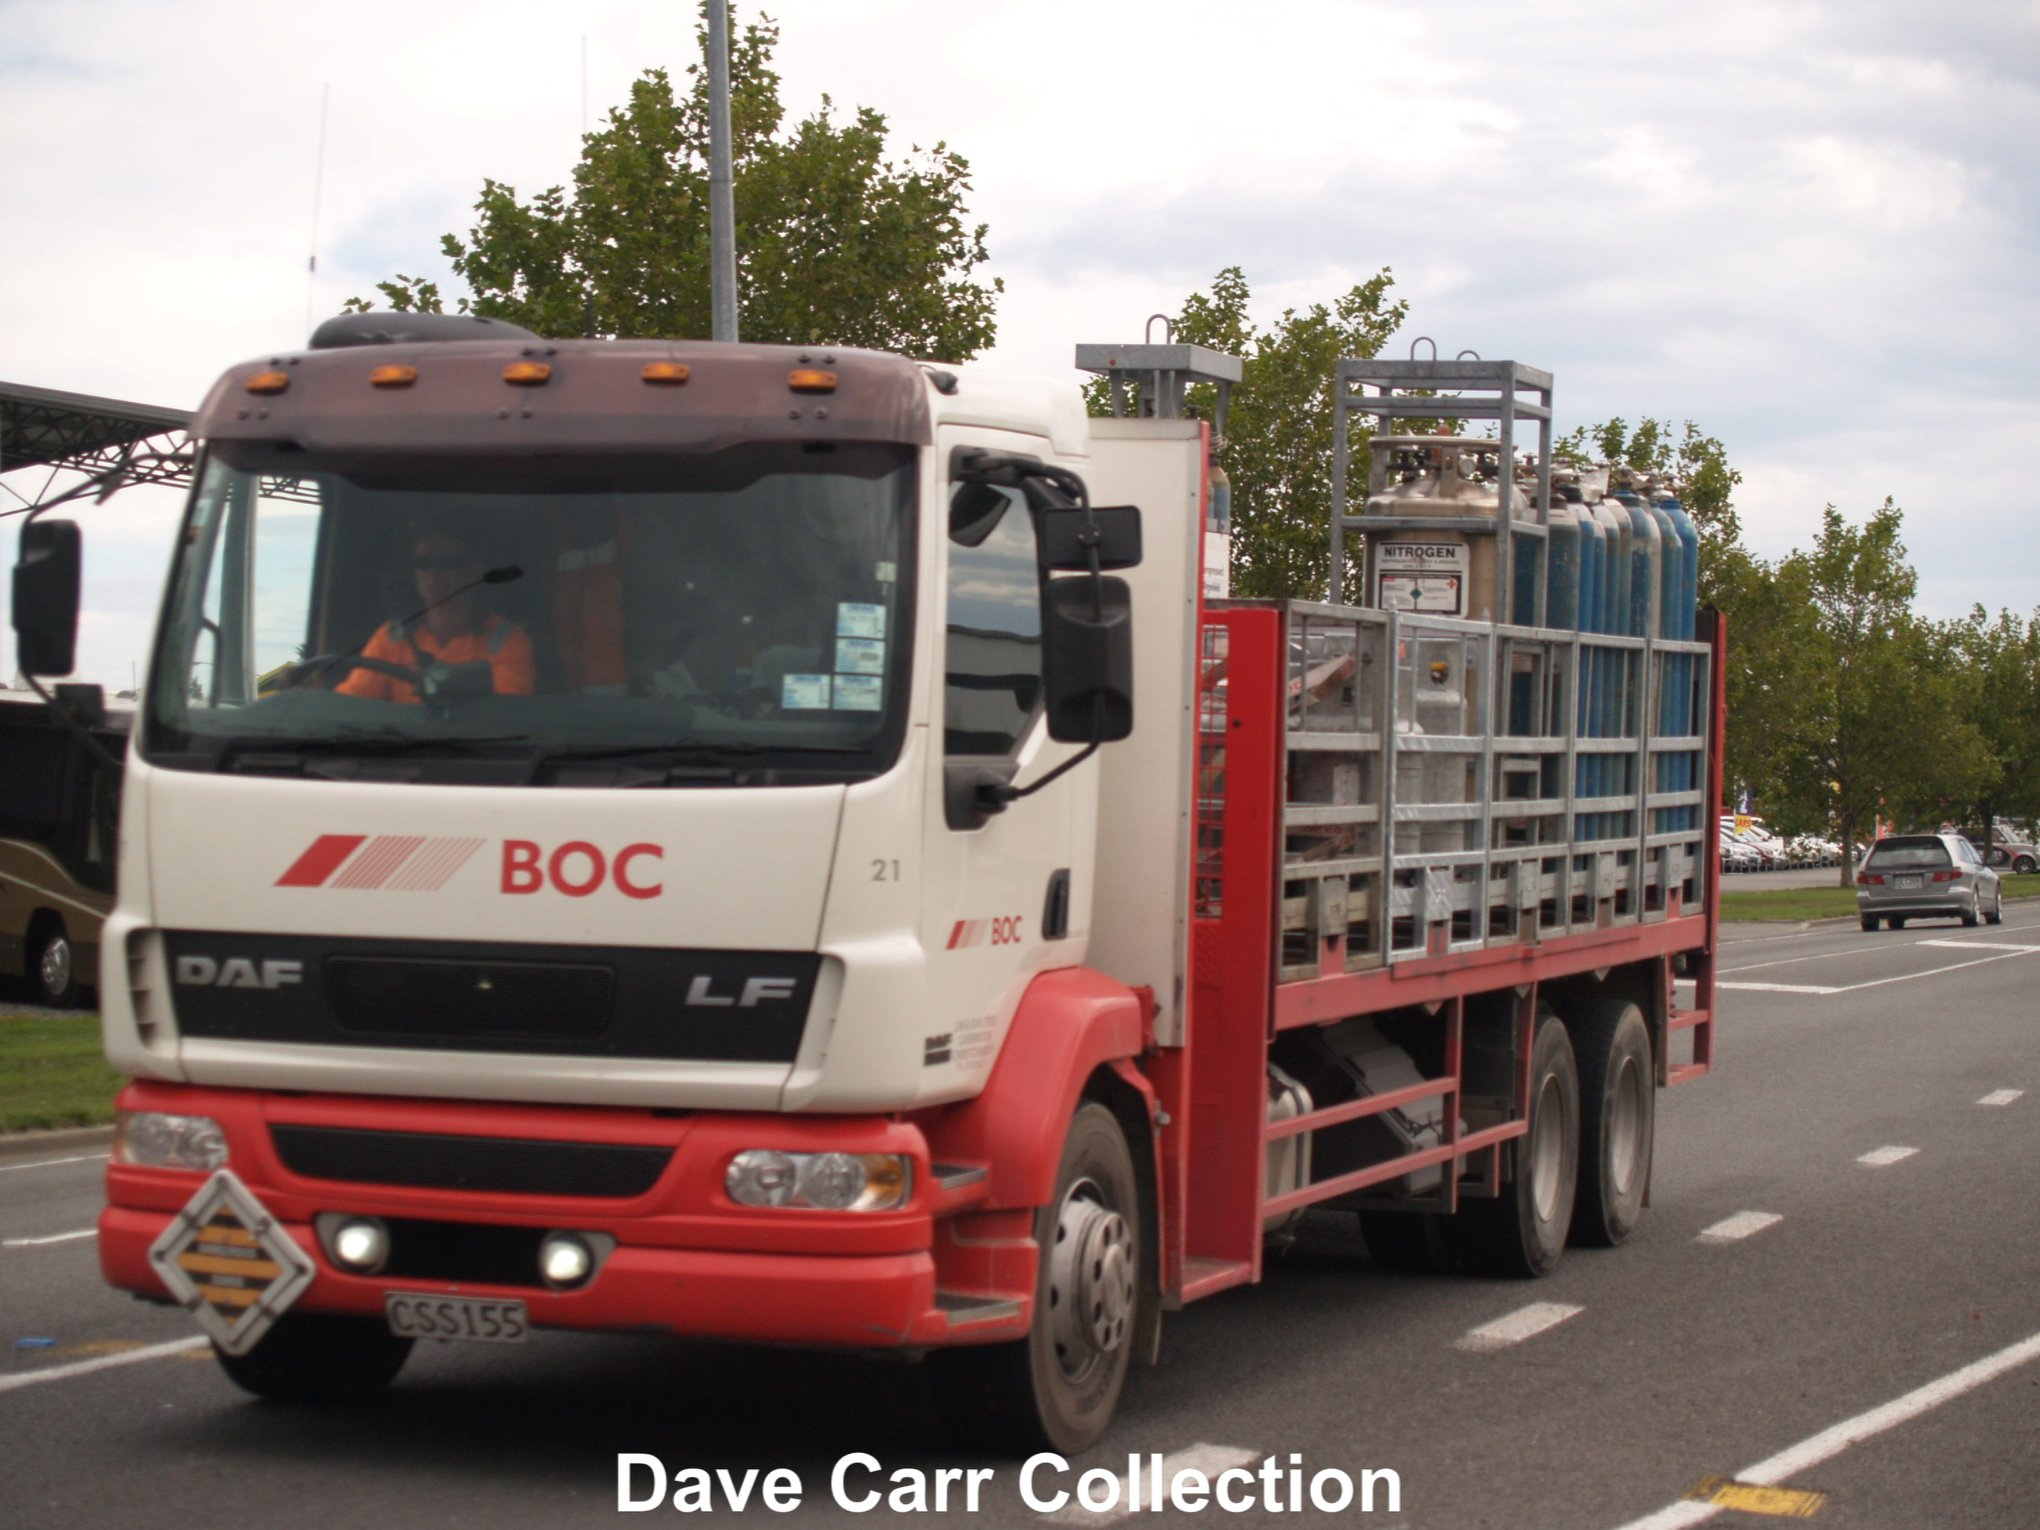 DAF-LF-BOC-Gas-No-21---Ashburton--16-March-2011